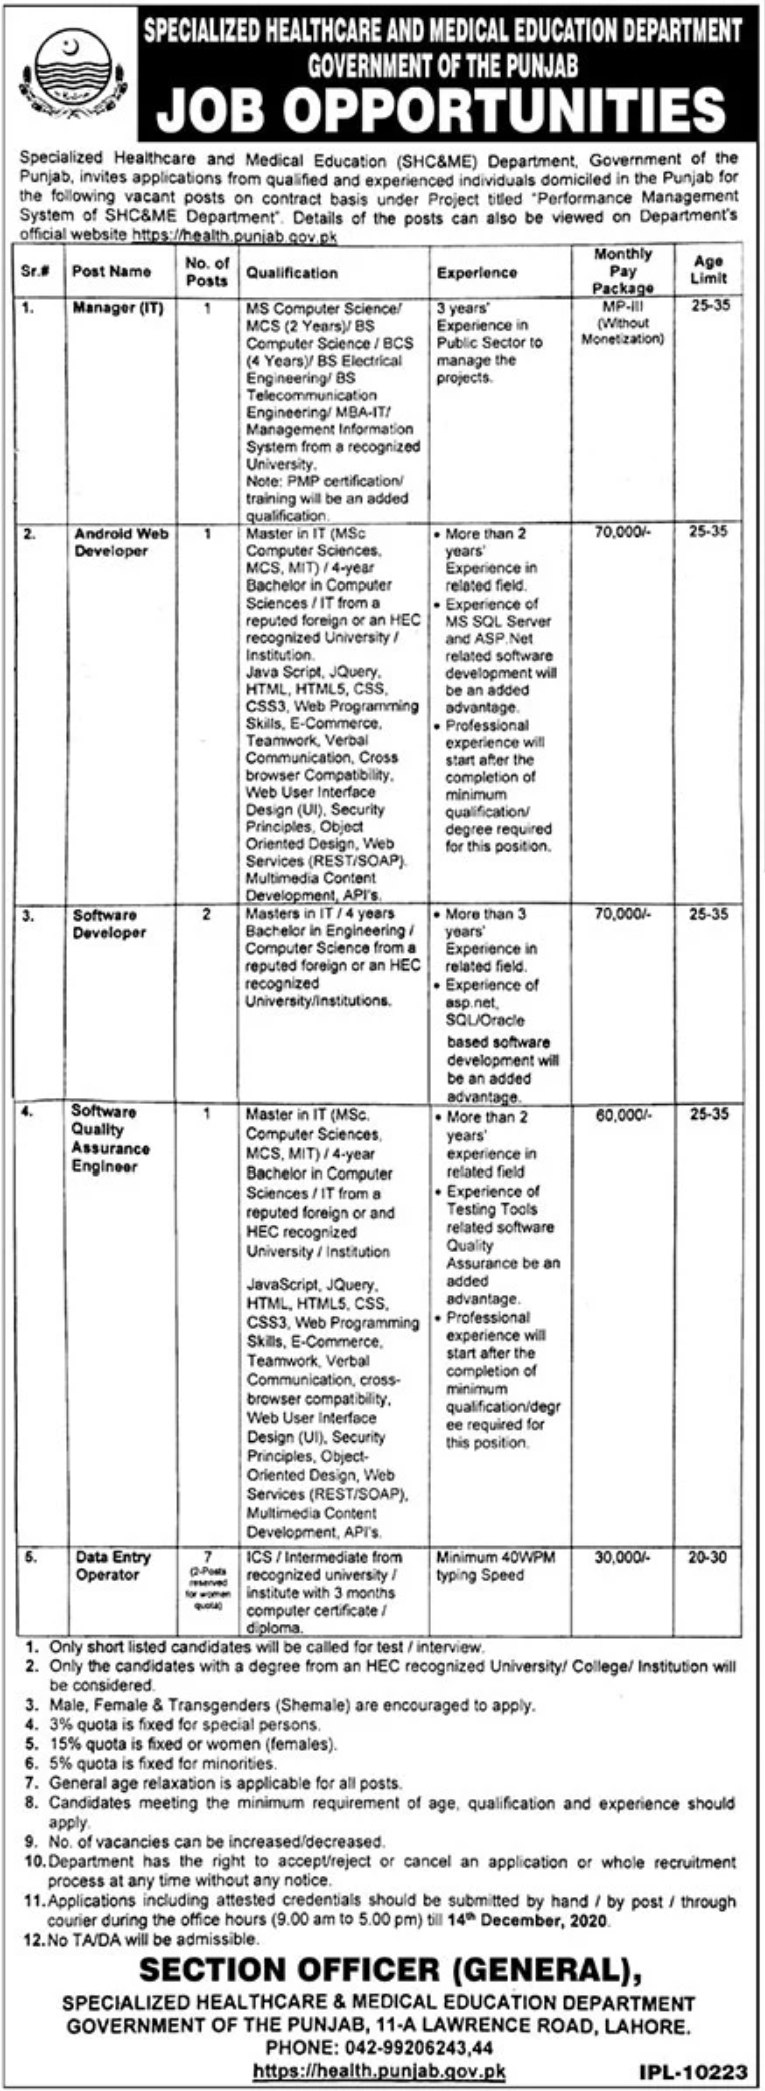 Specialized Healthcare and Medical Education Department Government of the Punjab Jobs November 2020